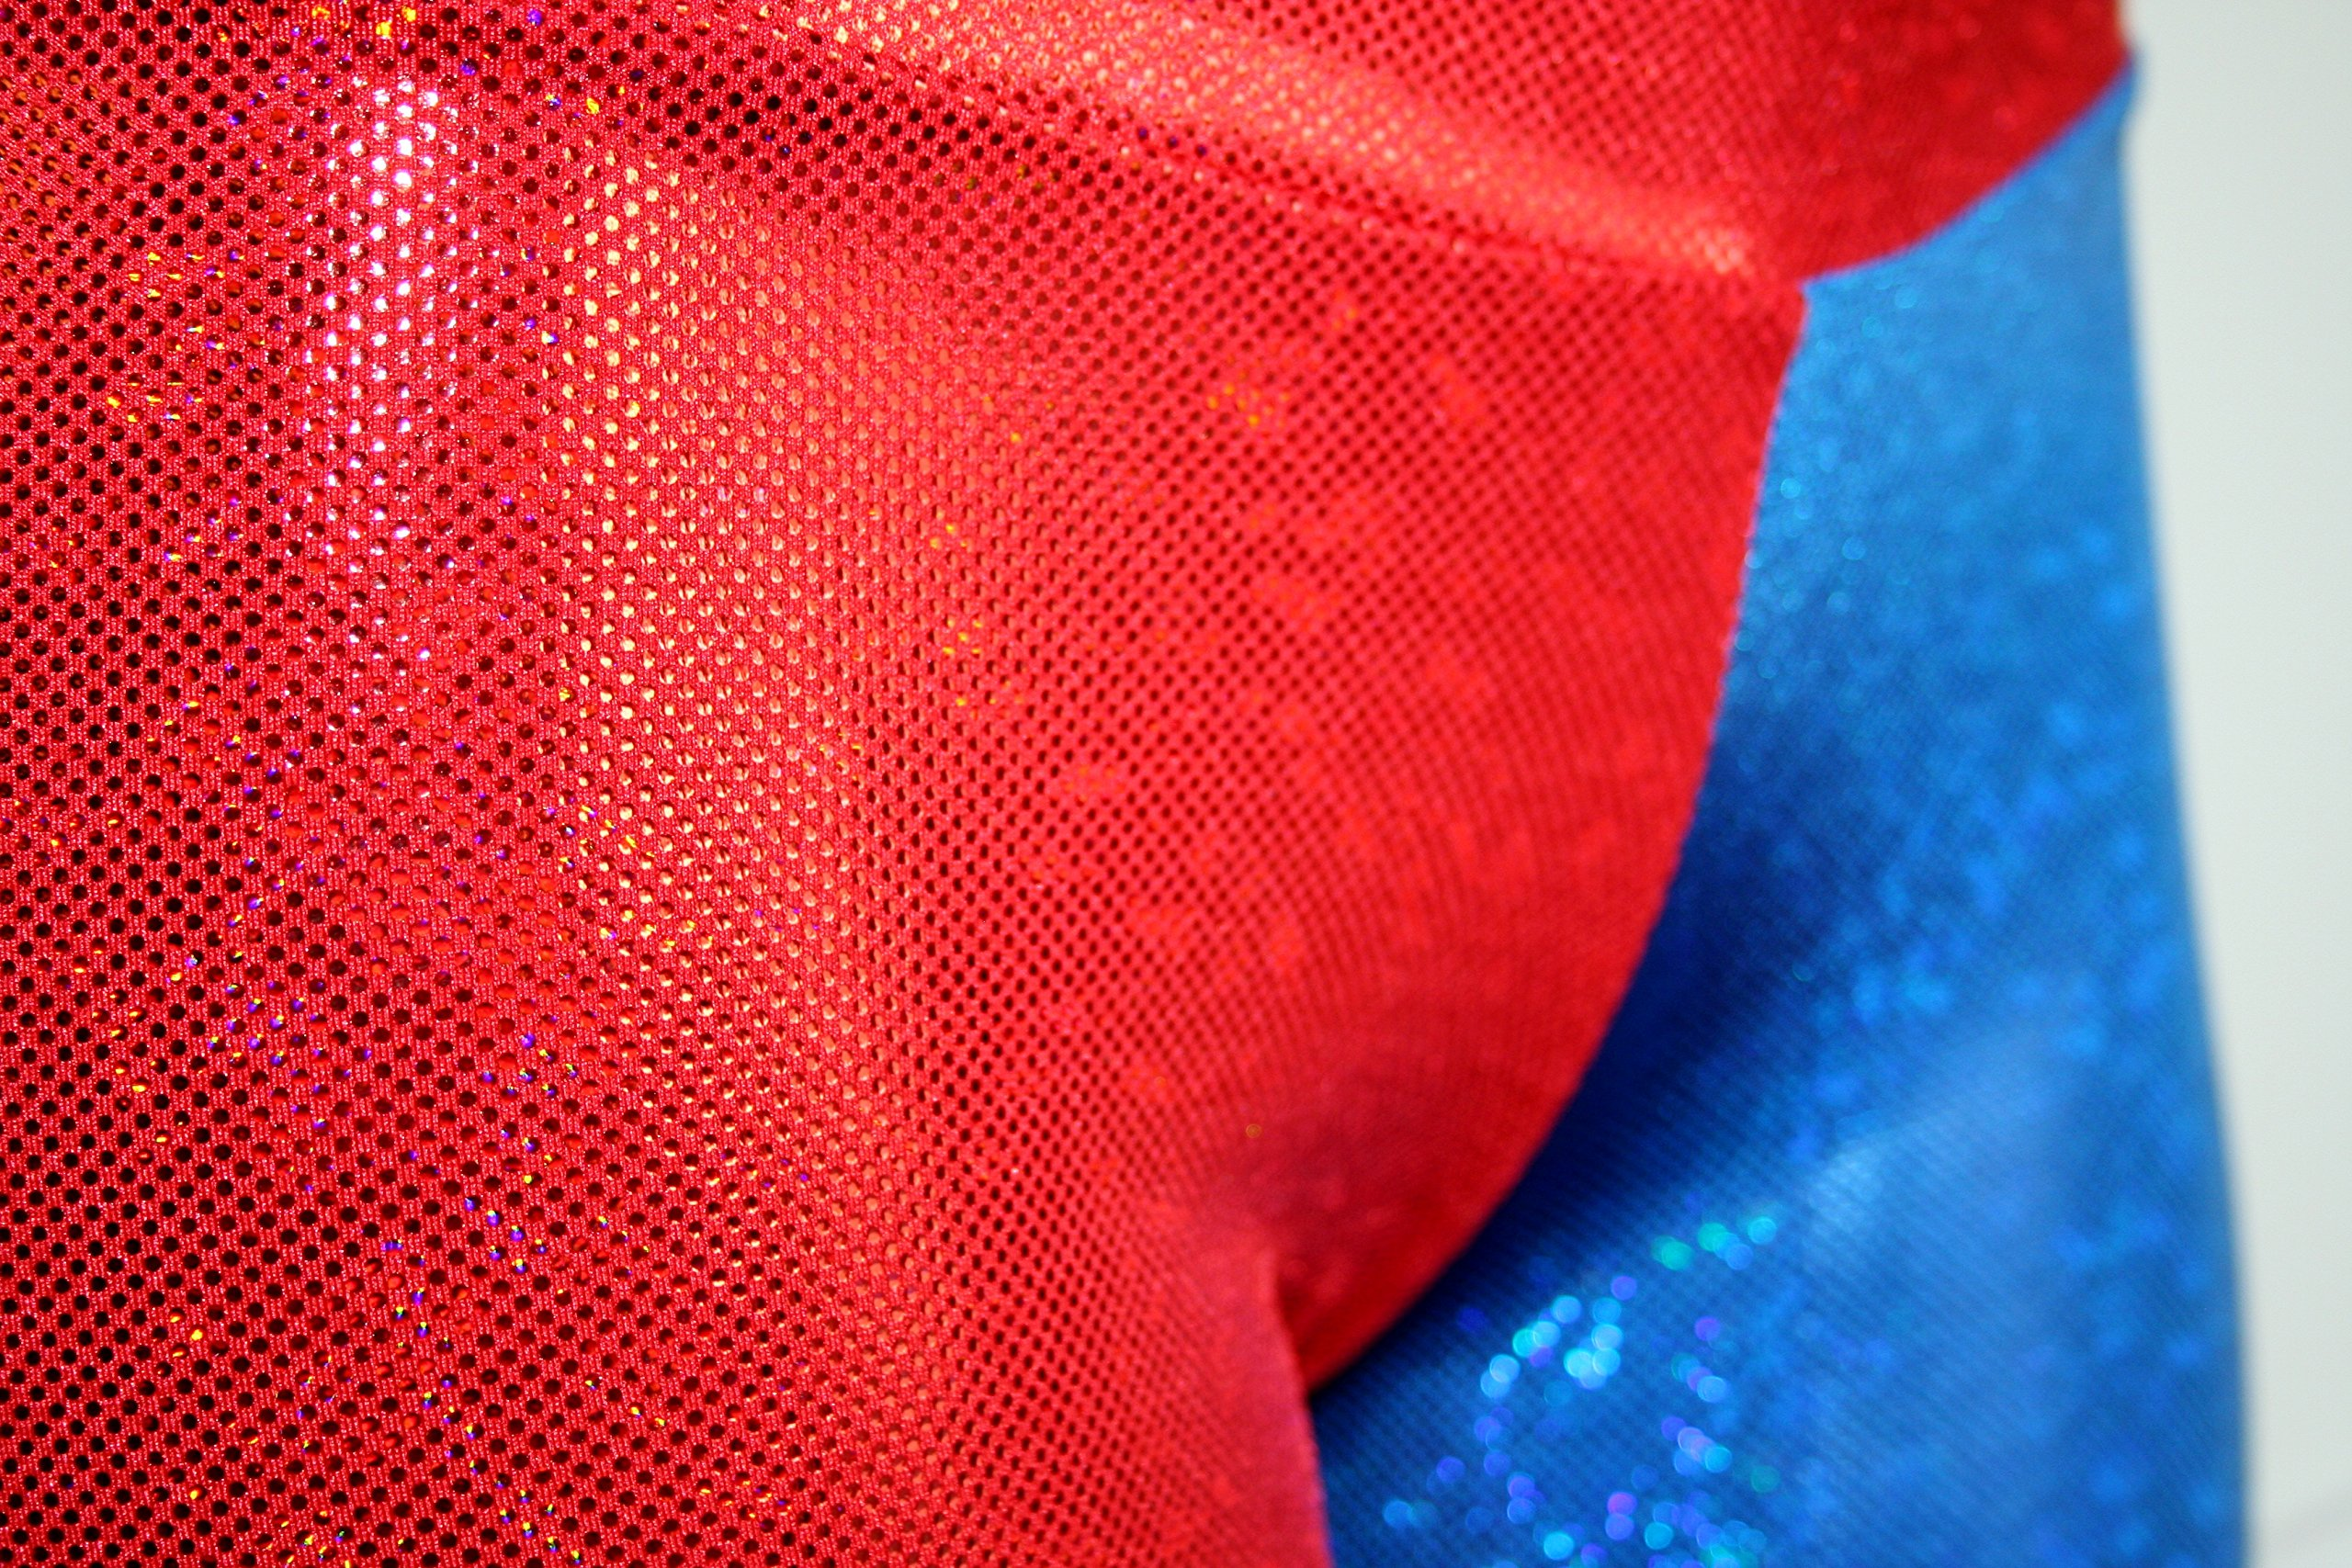 Dilly Duds Children's Red and Blue Holographic Spandex Shorts (X-Small, Red Blue) by Dilly Duds (Image #6)